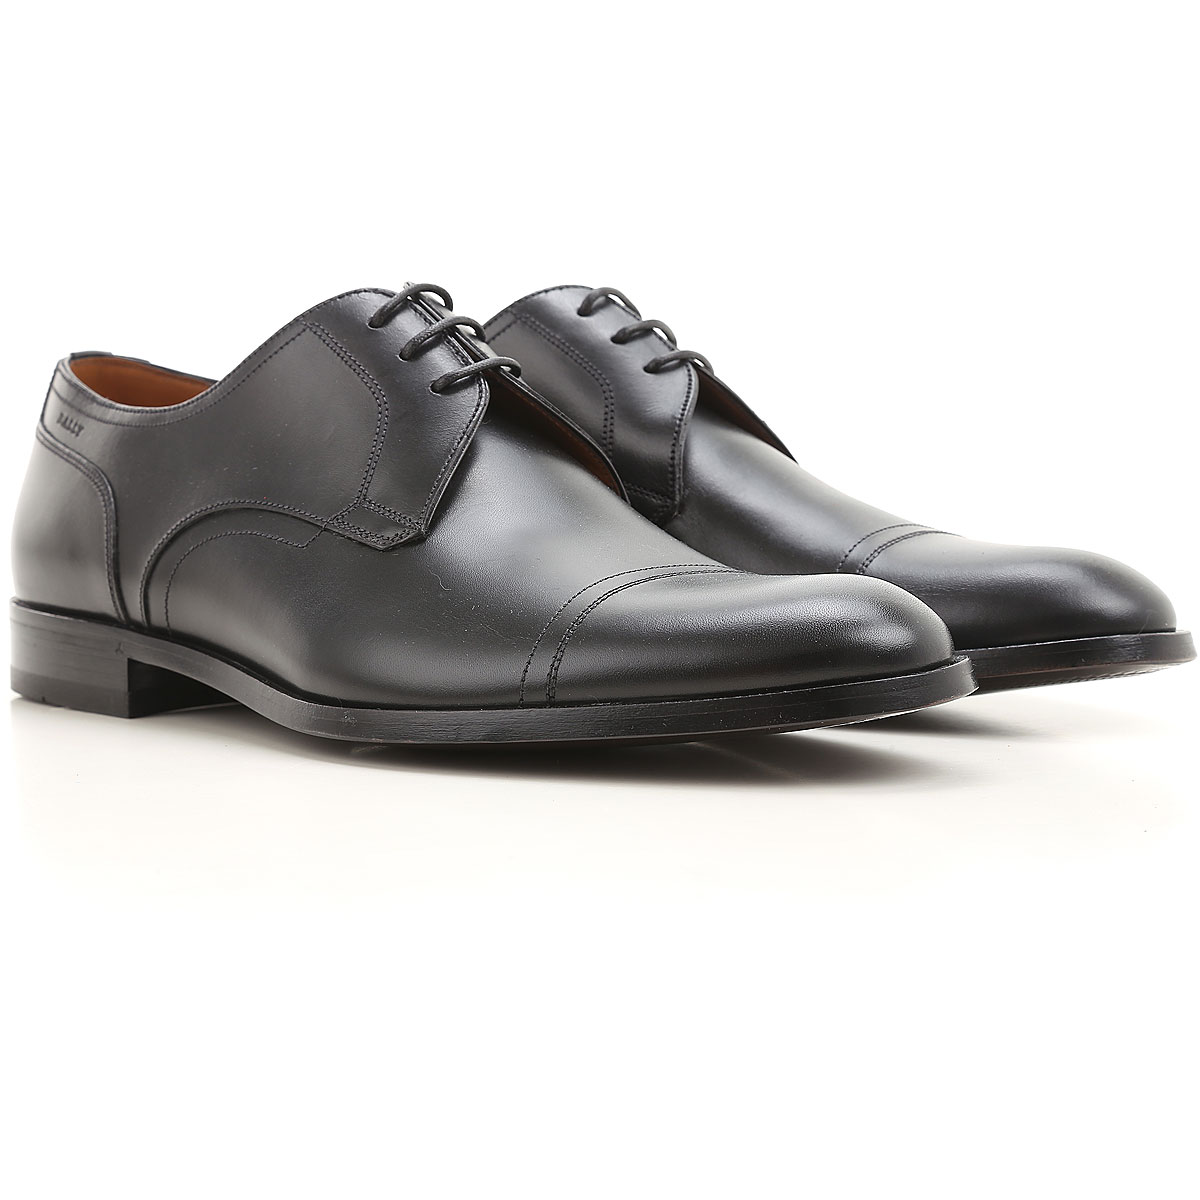 Image of Bally Lace Up Shoes for Men Oxfords, Derbies and Brogues On Sale in Outlet, Black, Leather, 2017, 9